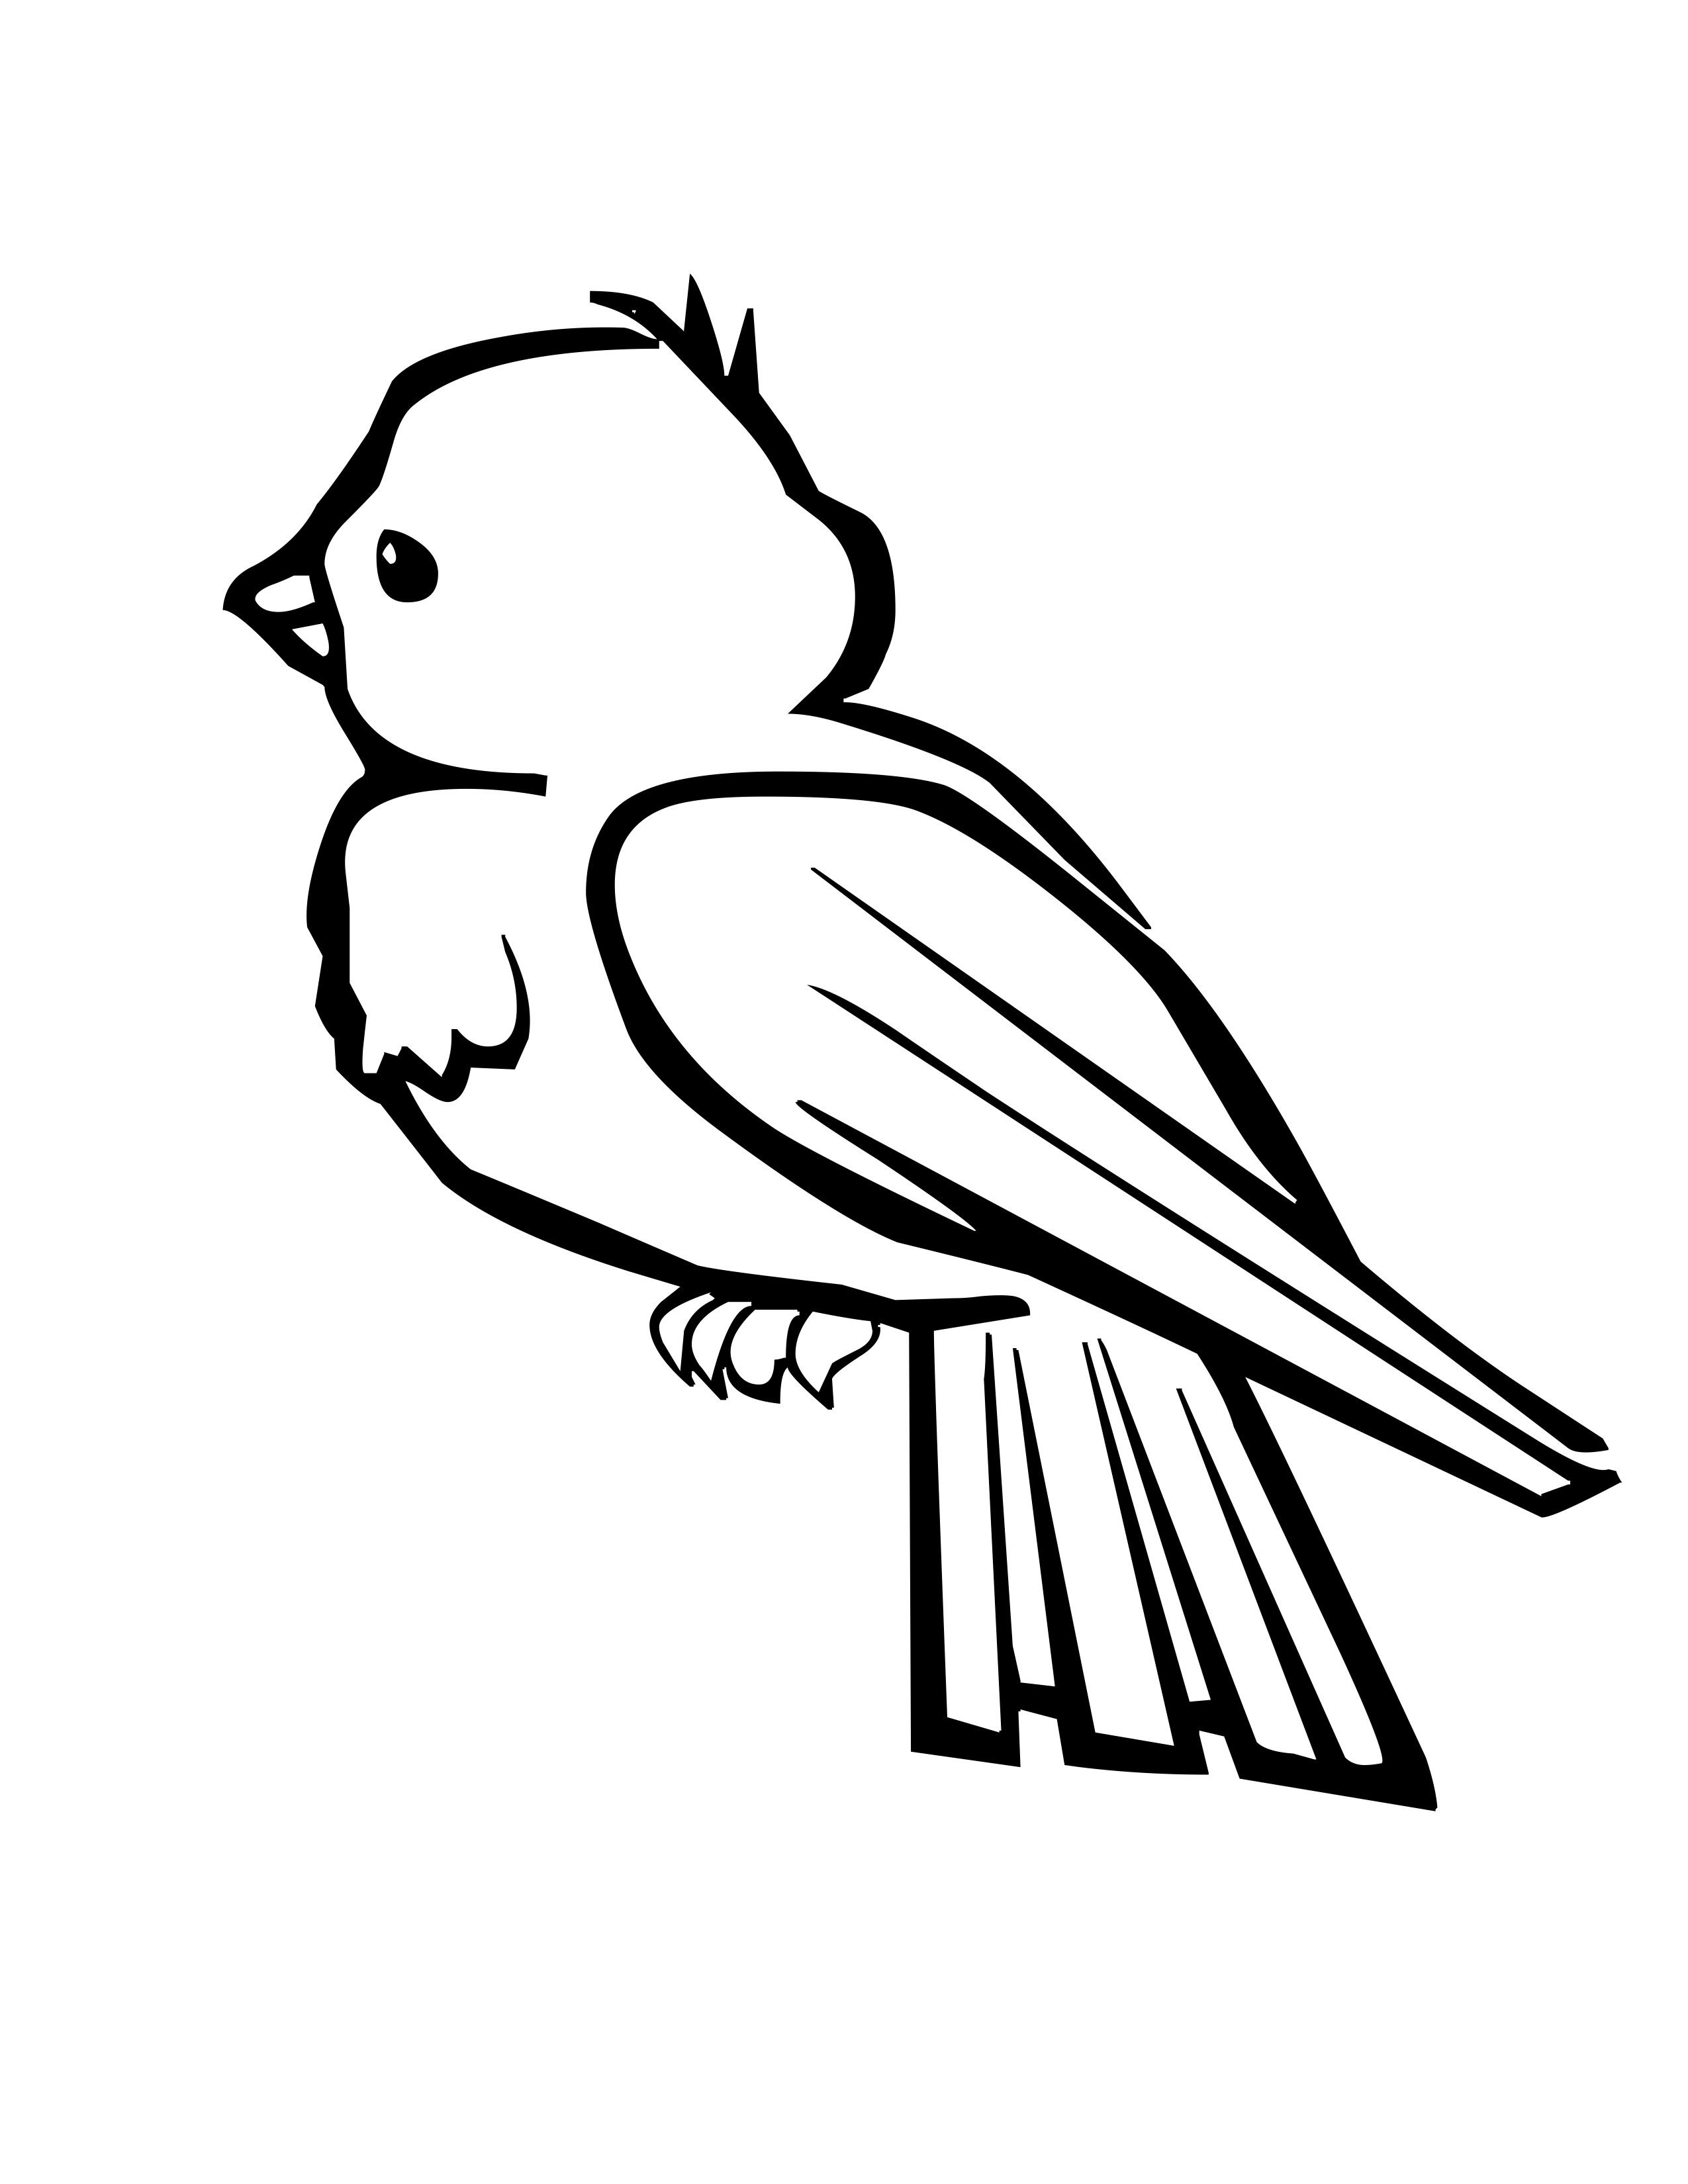 bird coloring pages | design | bird coloring pages, coloring